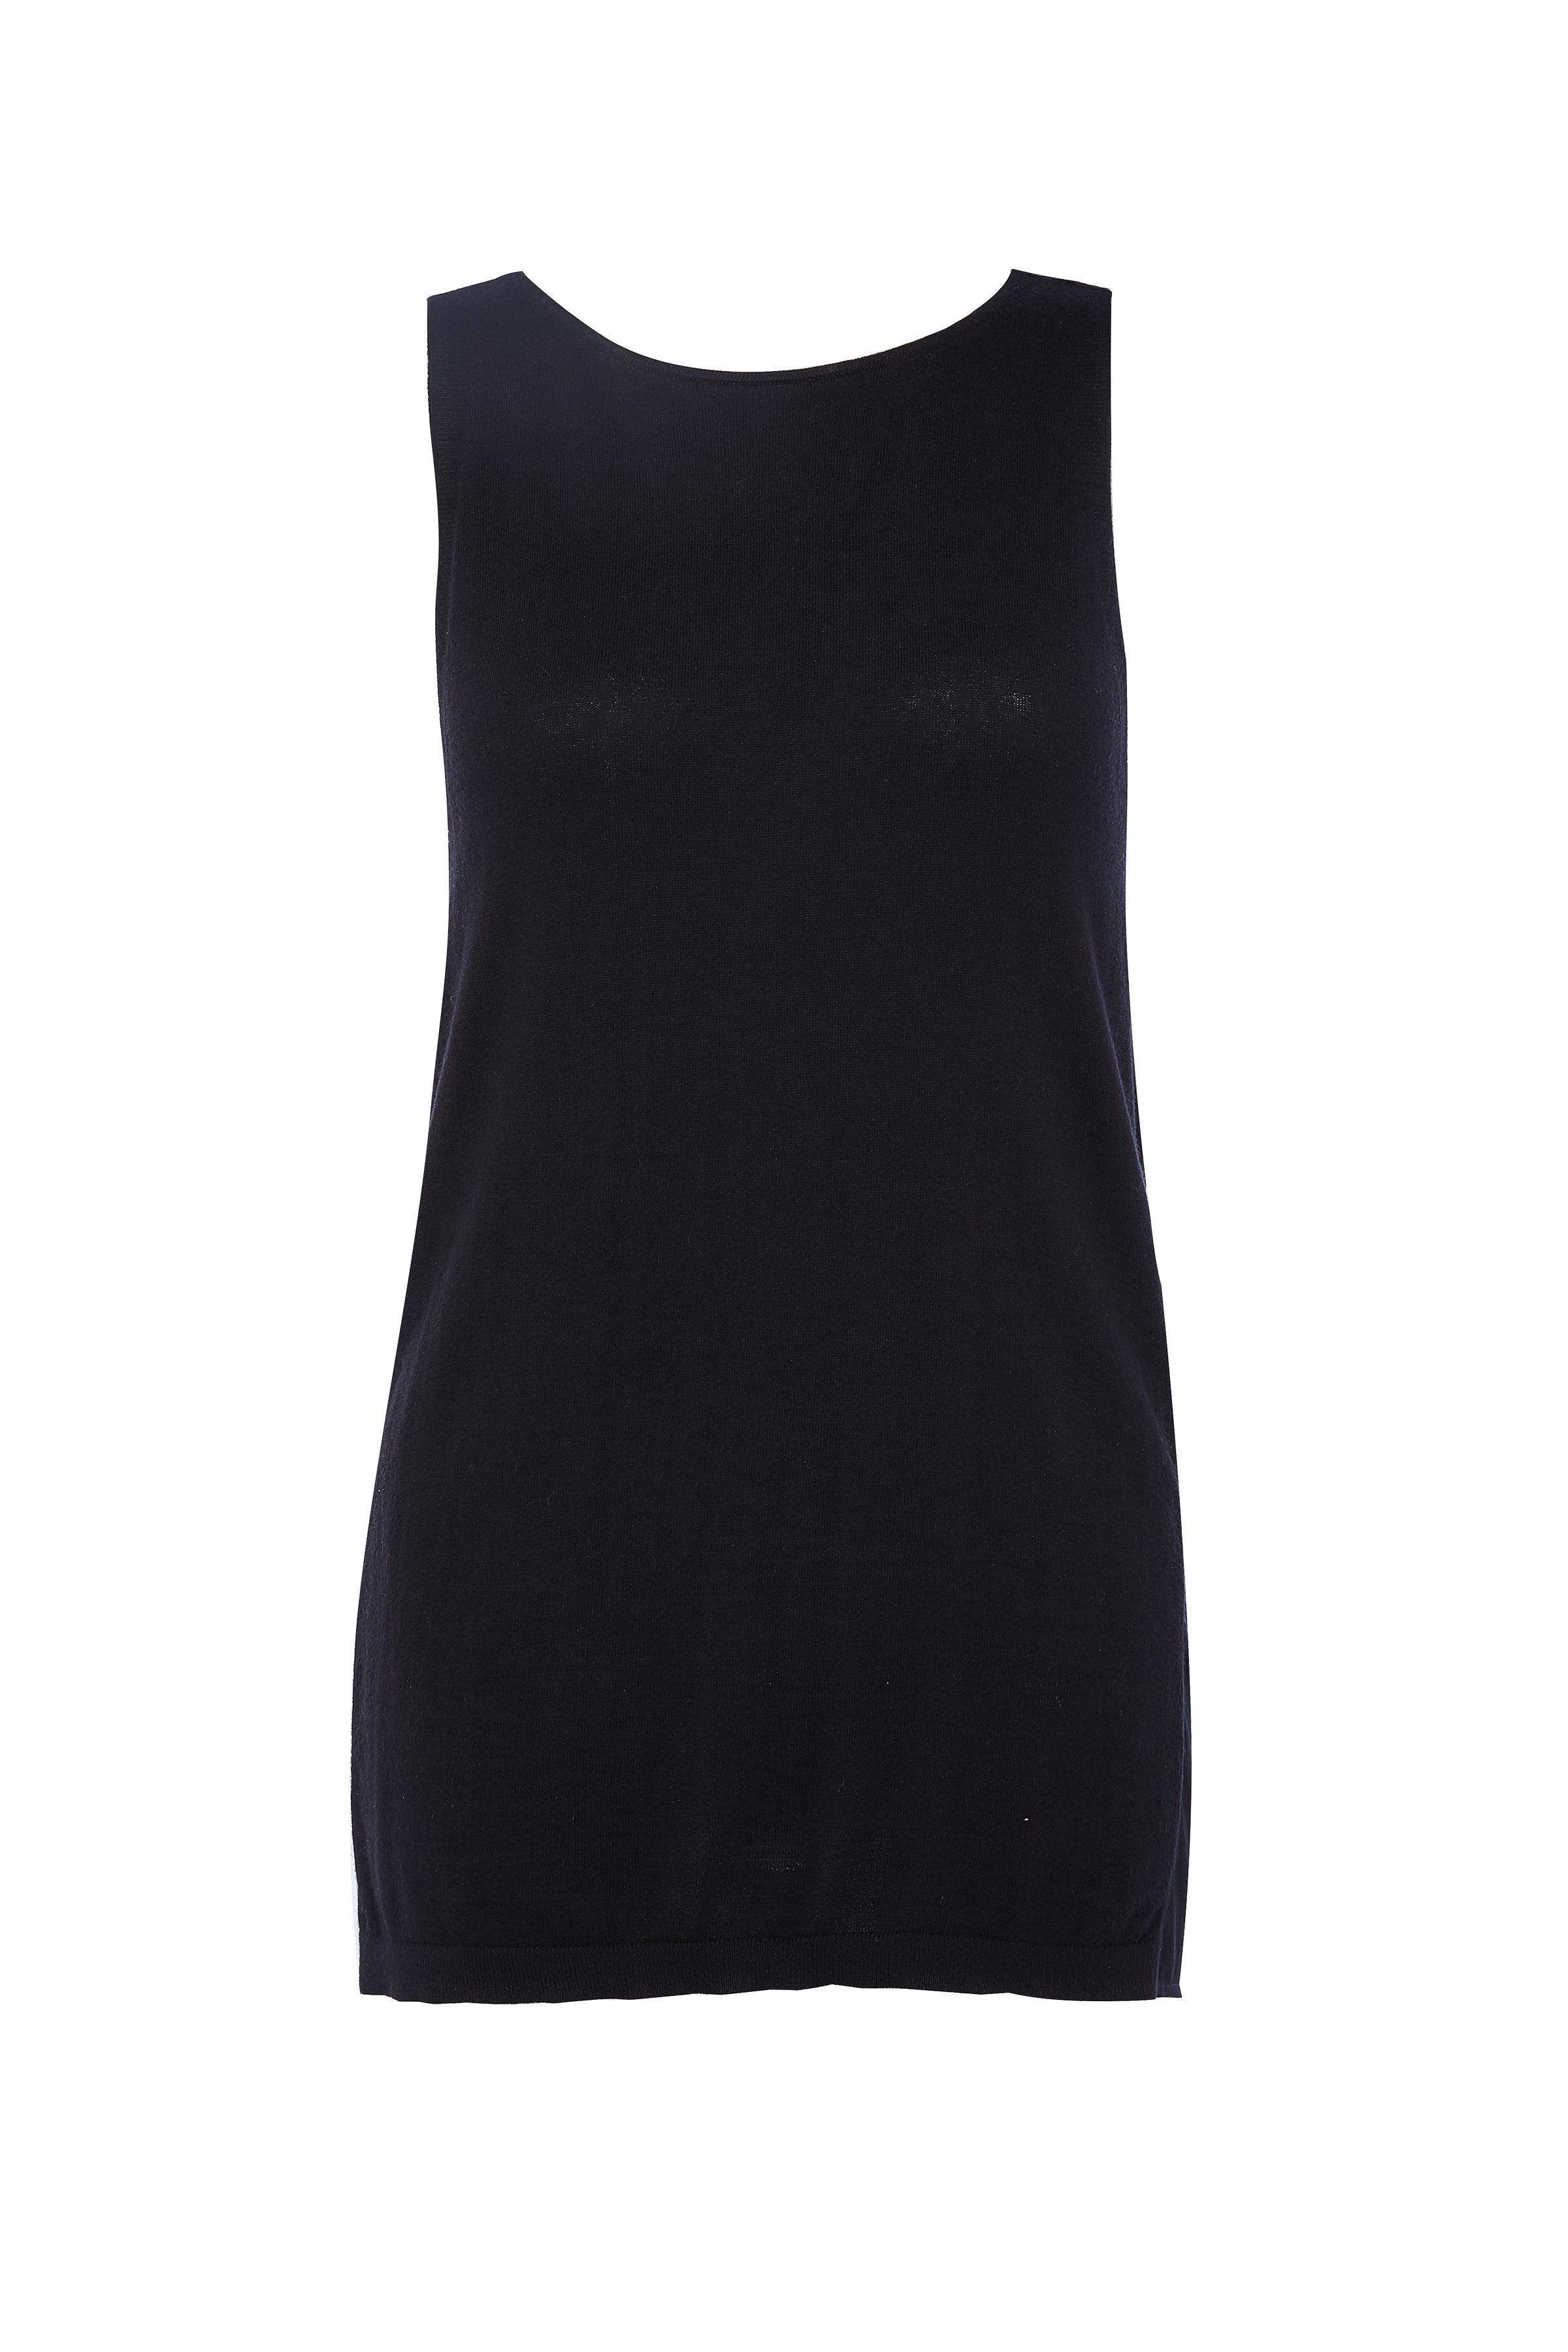 BLACK SLEEVELESS CASHMERE TOP